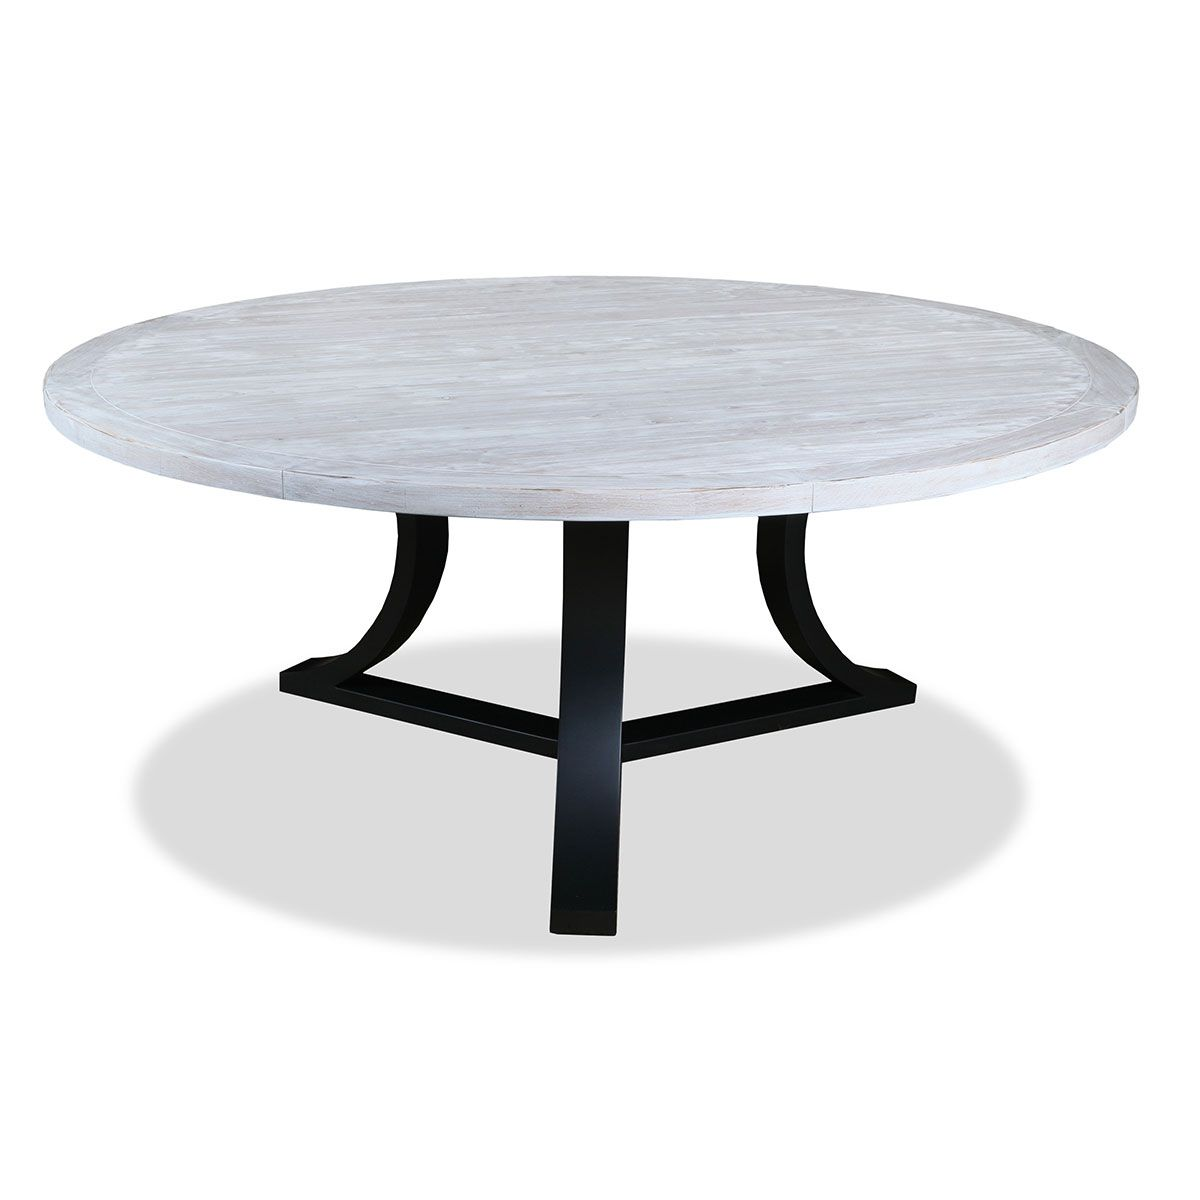 Belle Reclaimed Wood Round Dining Table Round Dining Table Modern Reclaimed Wood Round Dining Table Reclaimed Wood Dining Table